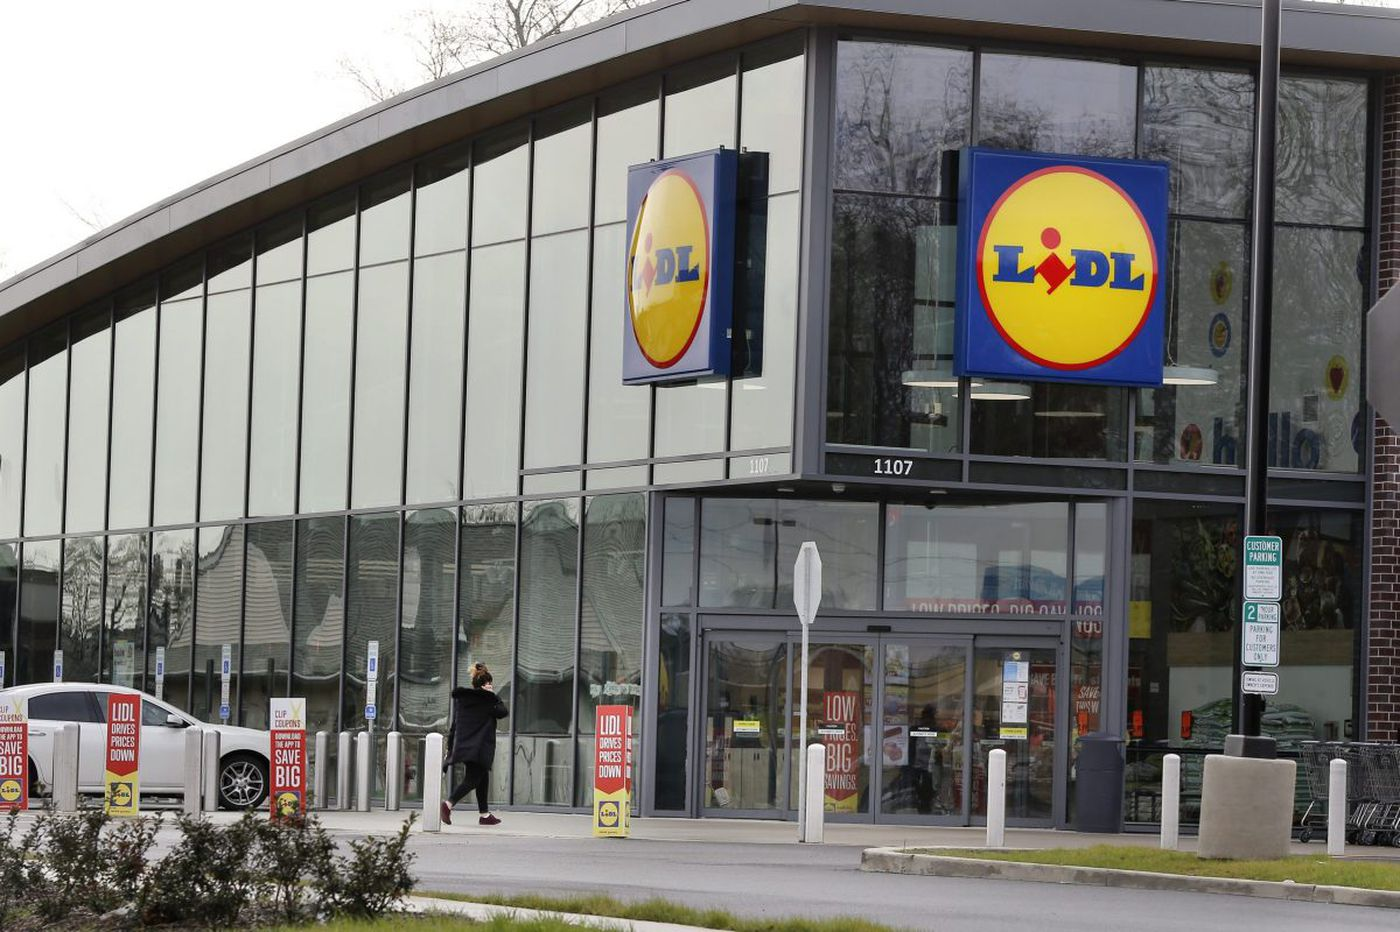 German grocer Lidl scales back plan for Philly store amid U.S. expansion's shaky start